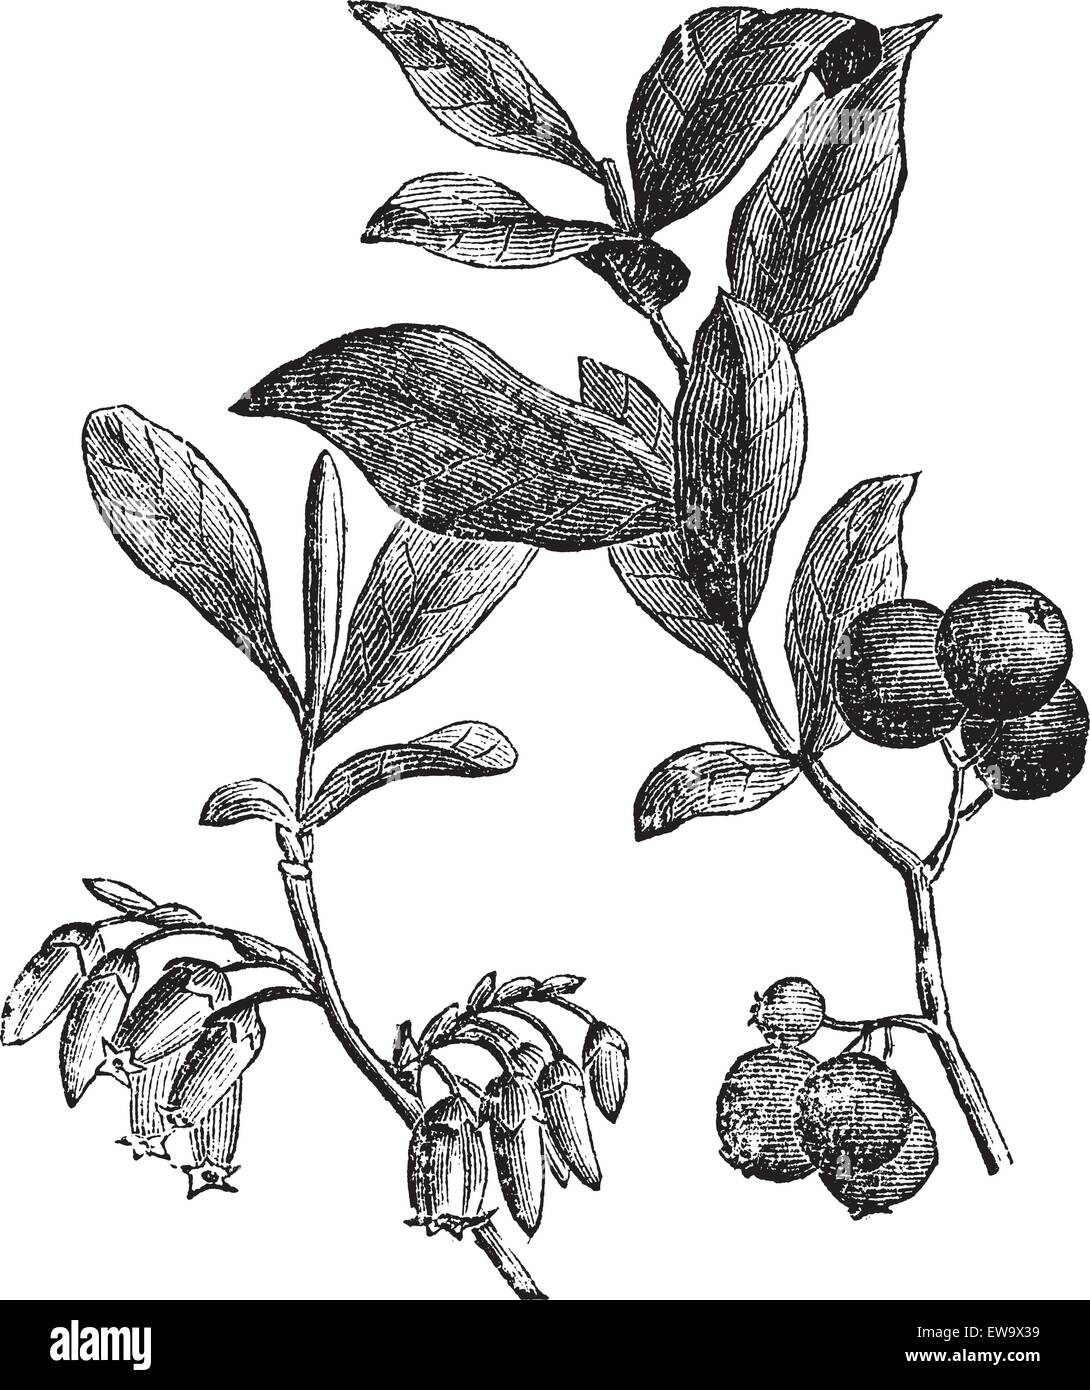 Huckleberry or Gaylussacia resinosa engravin. Old vintage engraved illustration of huckleberry plant. The huckleberry - Stock Vector